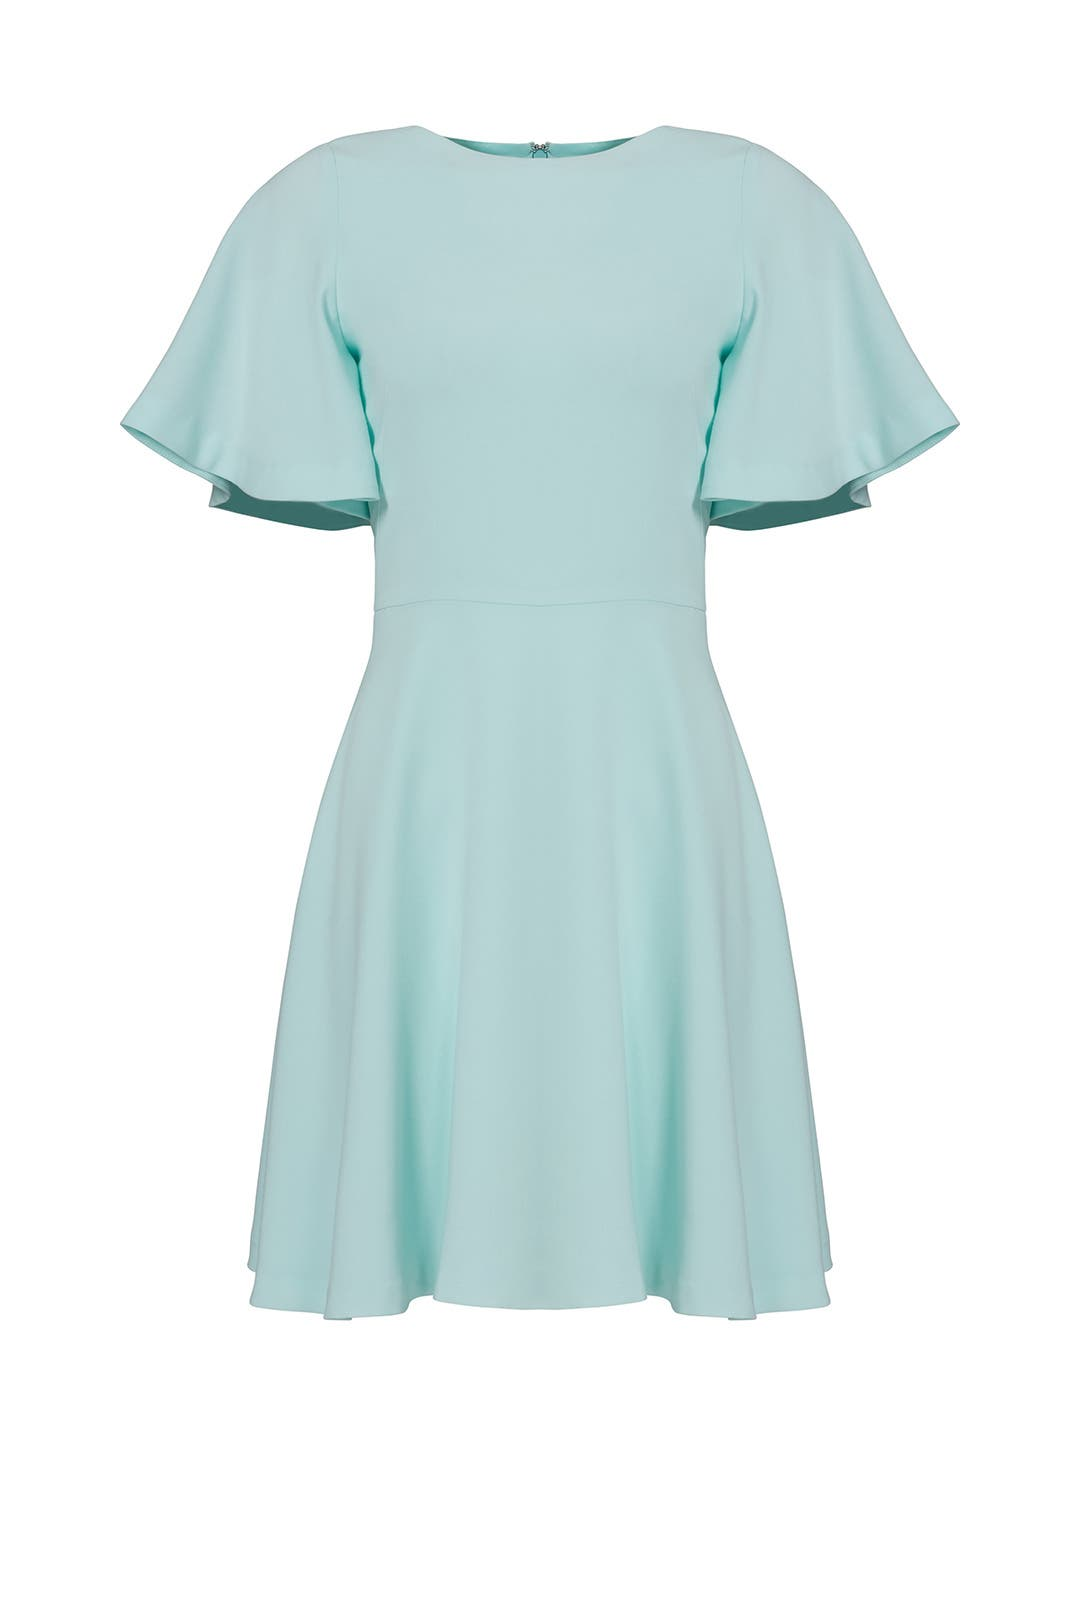 Mint Flutter Dress by Shoshanna for $65 - $80 | Rent the Runway